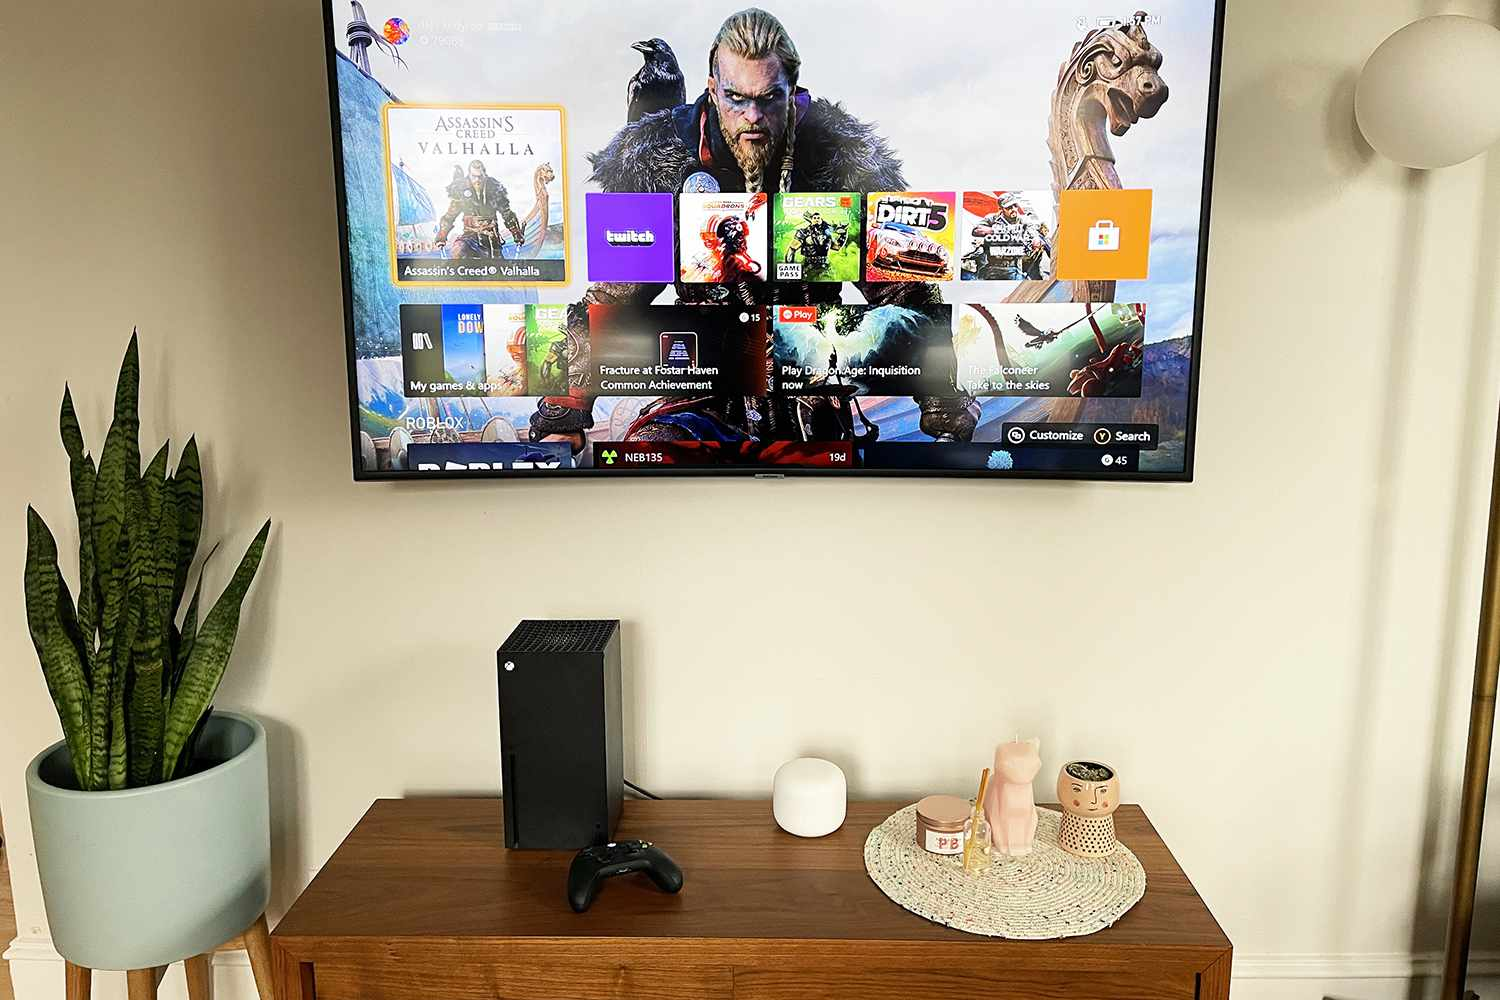 Xbox Series X and TV